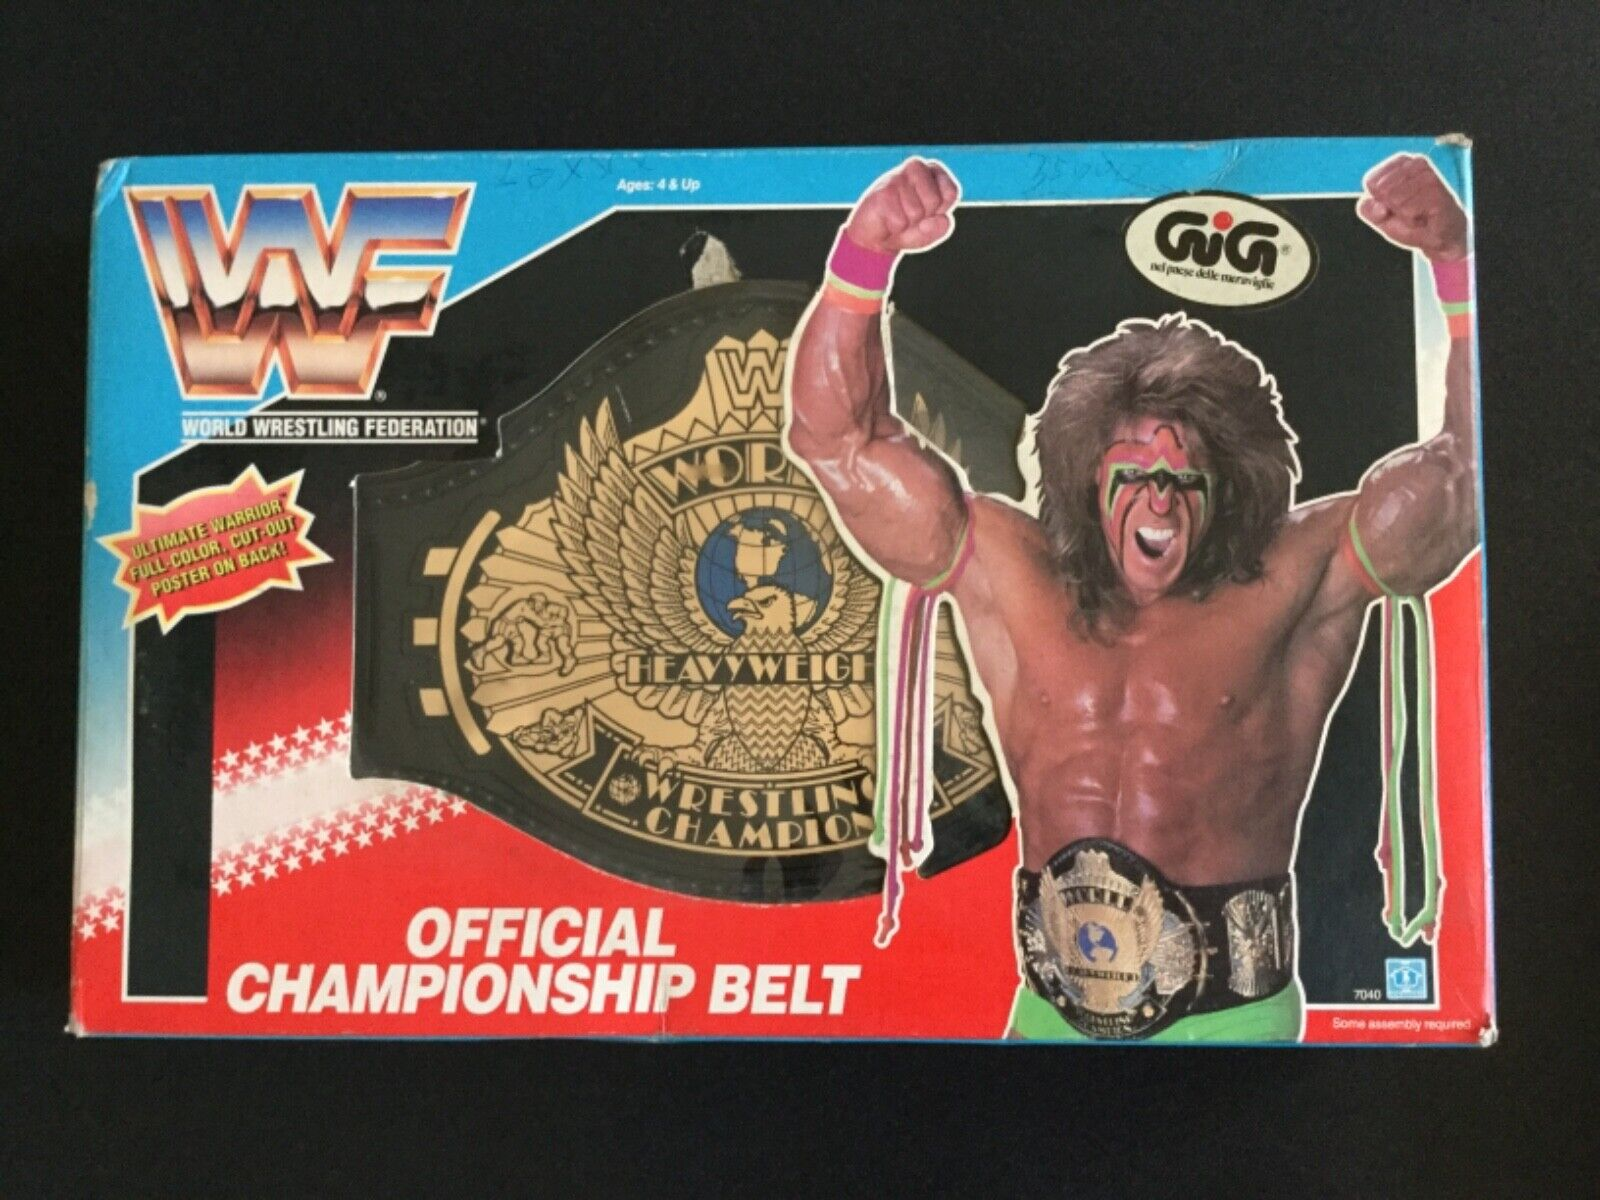 garantizado WWE WWF 90s Hasbro Championship Belt Belt Belt Ultimate Warrior New in Box very rare  nueva marca